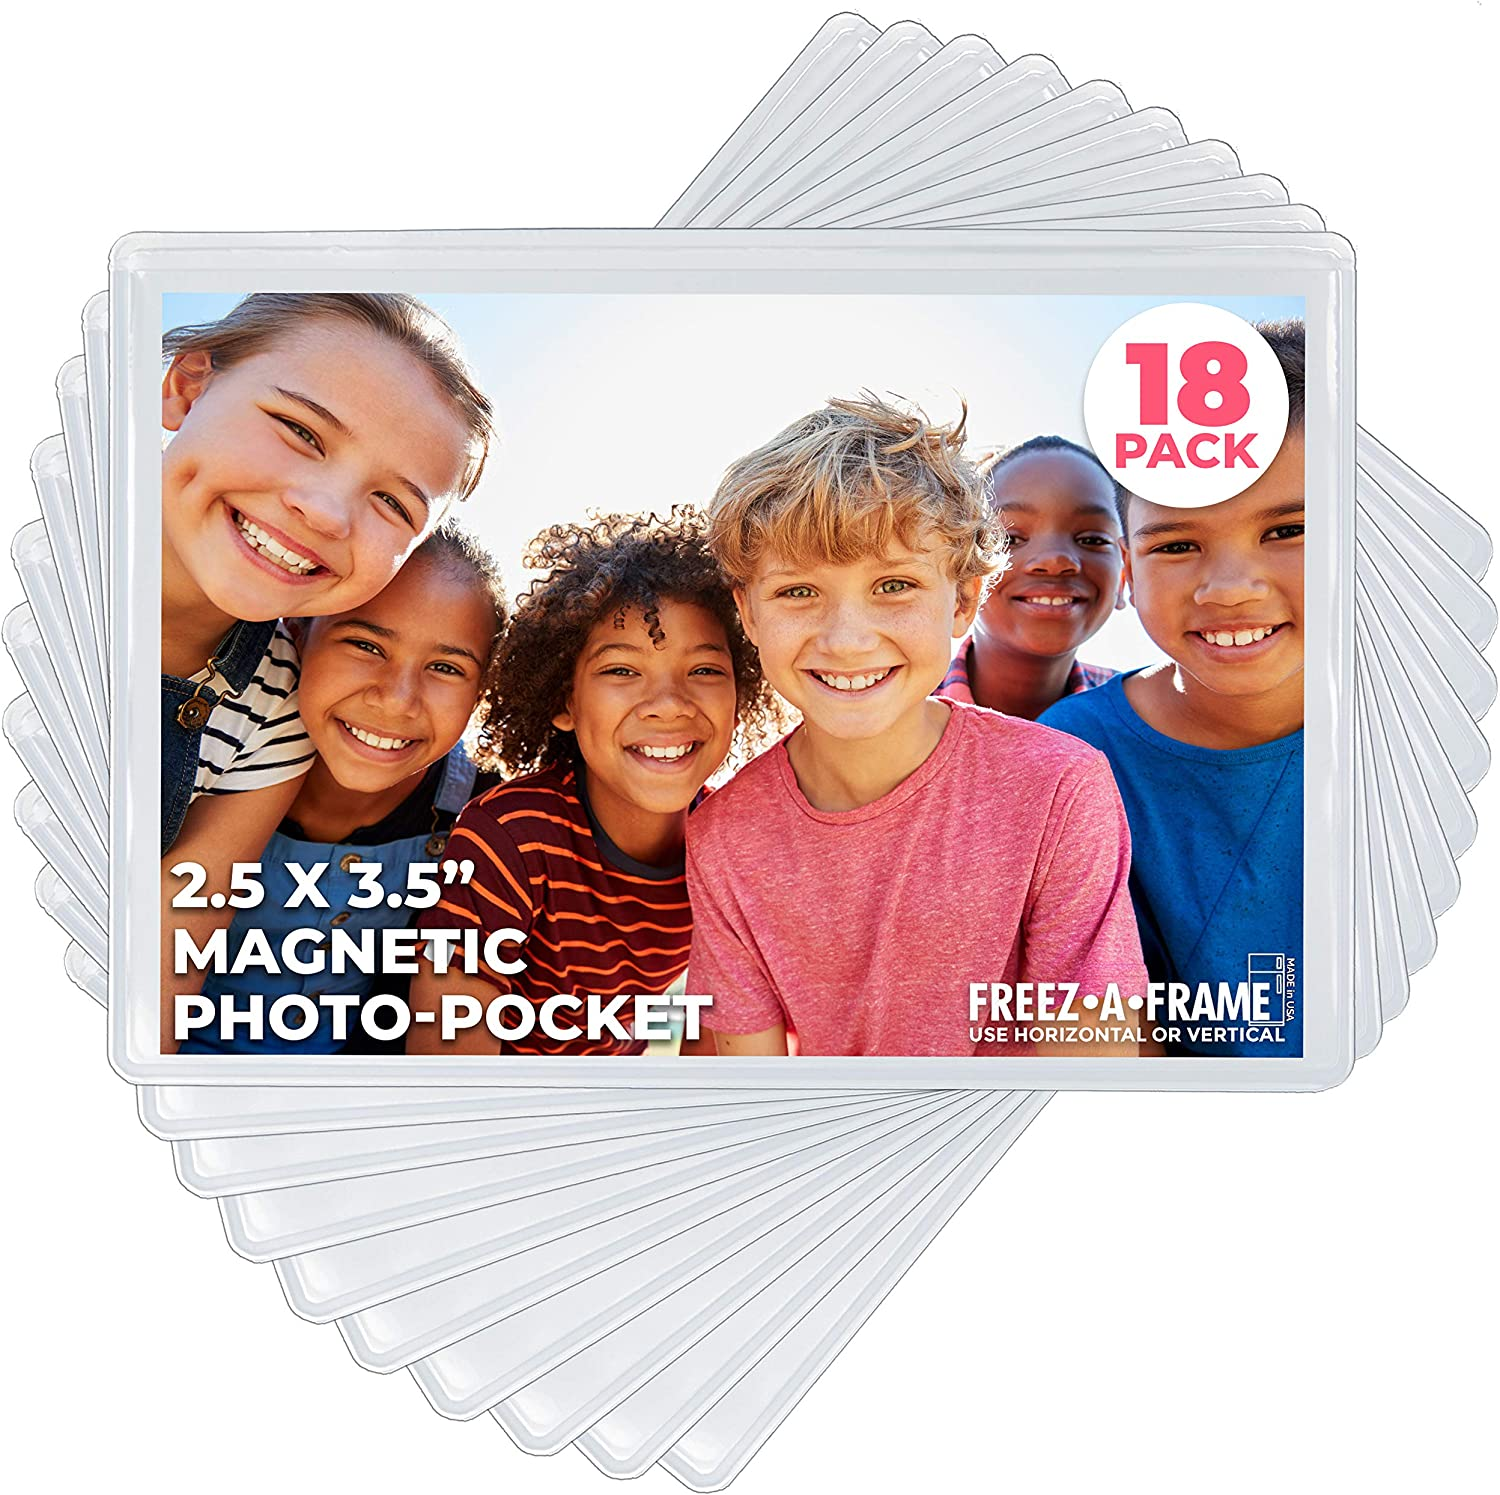 """Freez A Frame Clear Magnetic Picture Frame Pockets For Refrigerator School Locker, or any Magnetic Surface 18 Pack Holds 2.5"""" x 3.5"""" Photos (2.5 x 3.5)"""